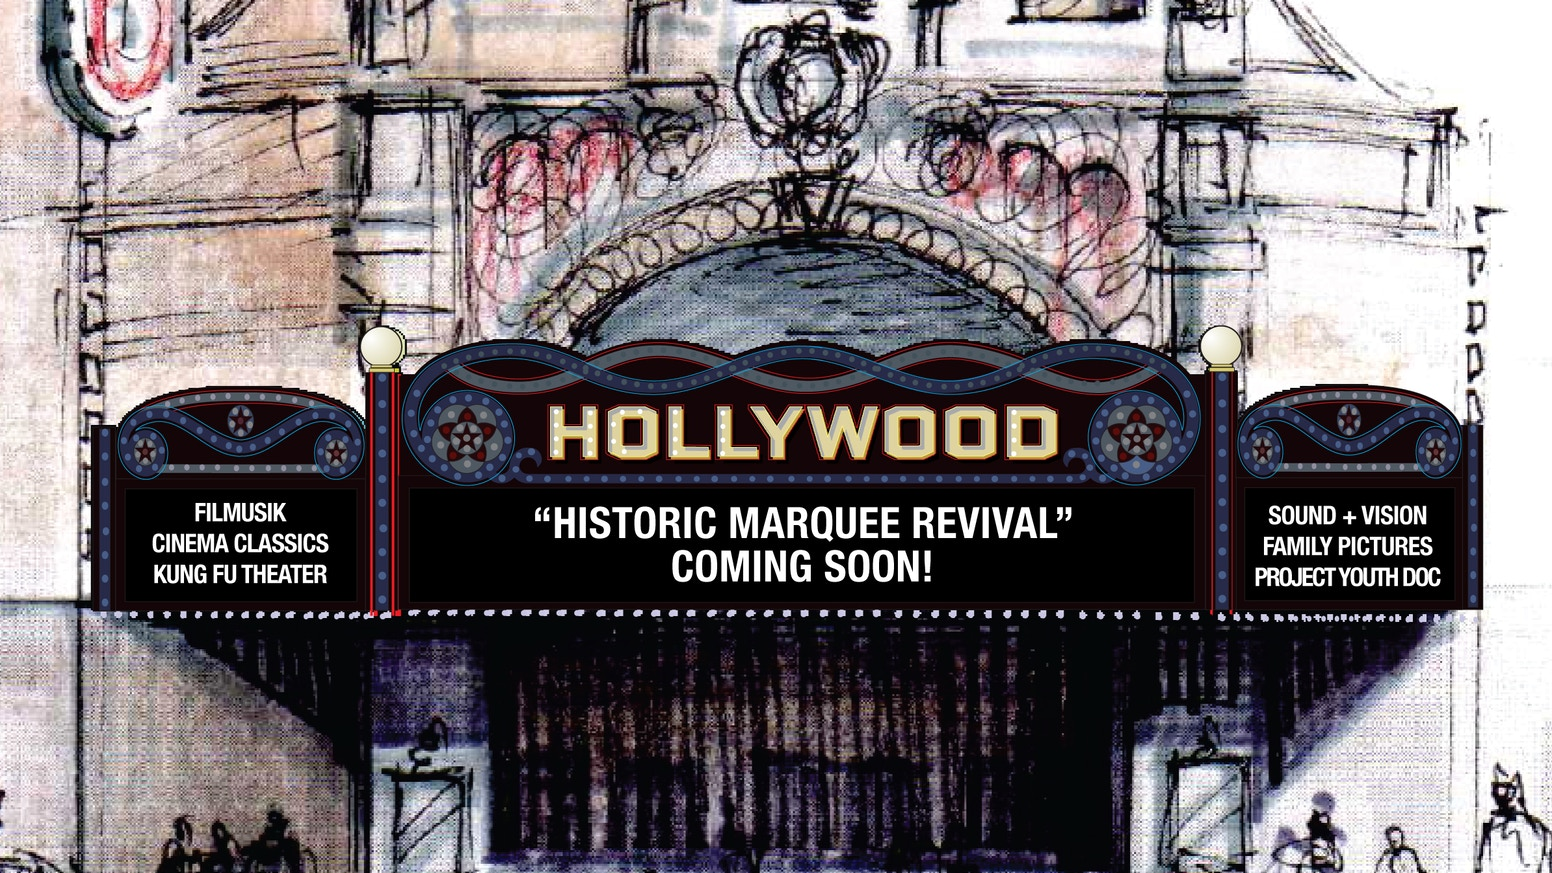 Hollywood Theatre Historic Marquee Revival